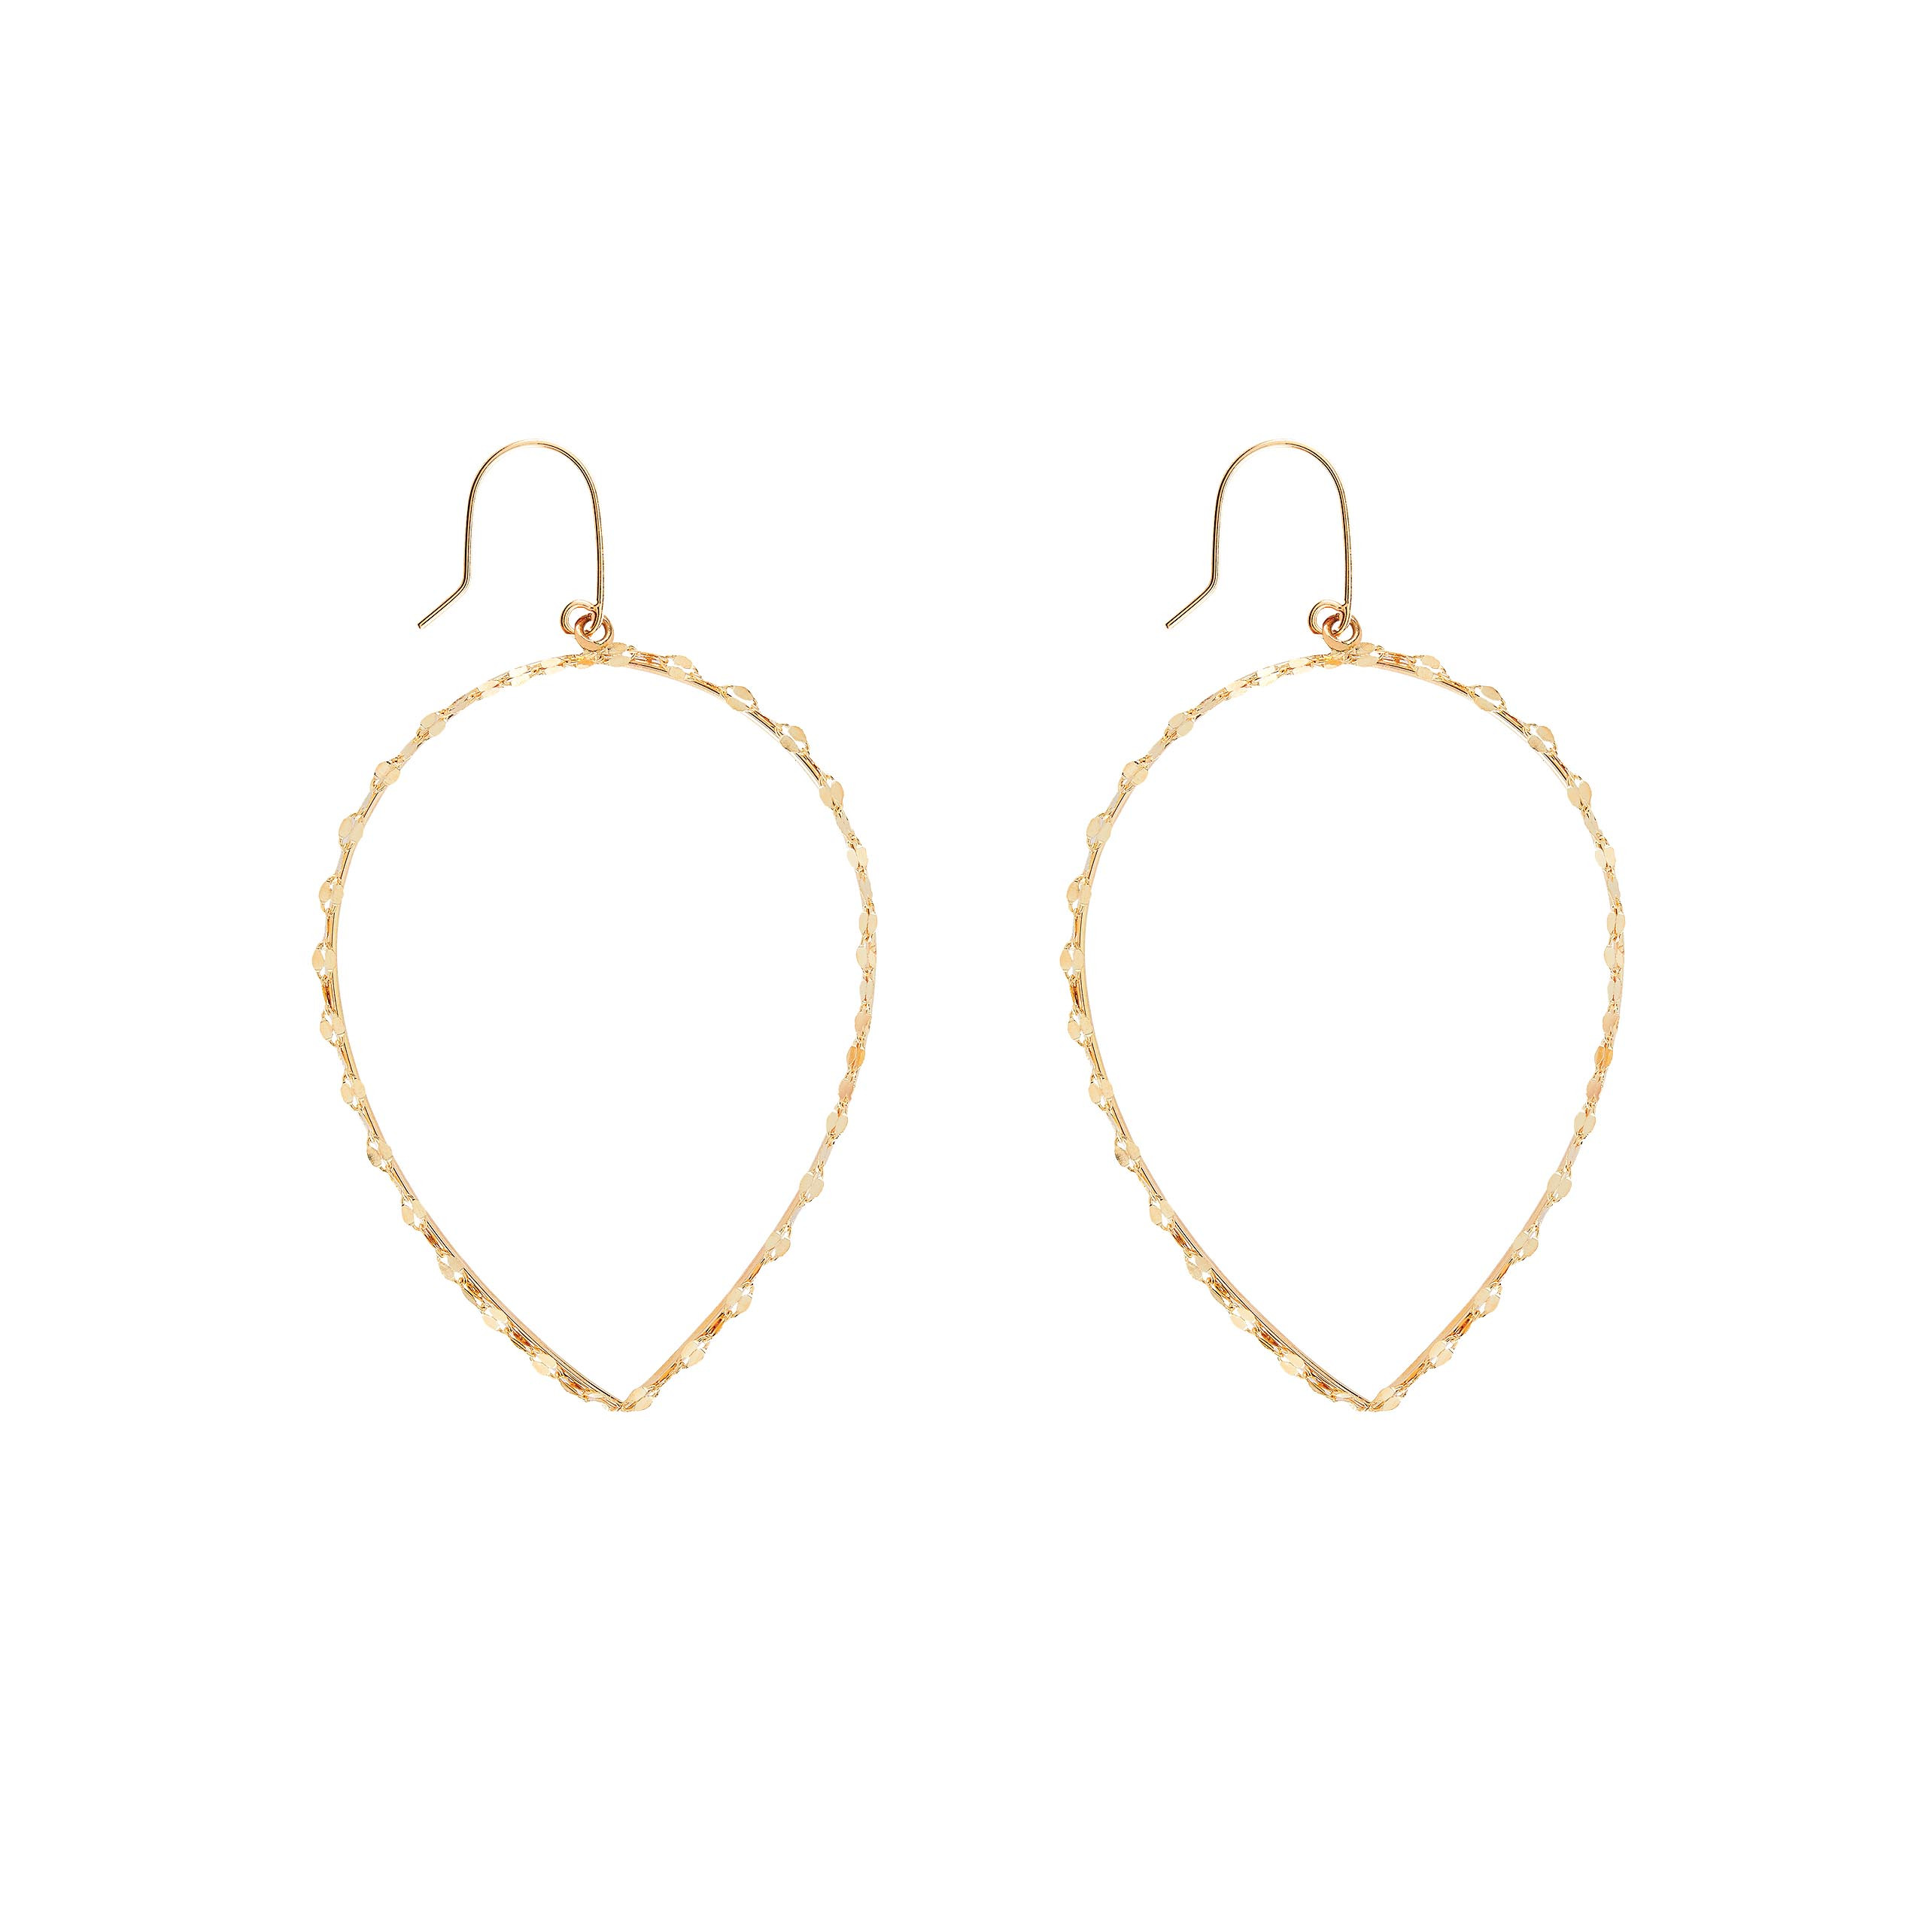 New Lana Jewelry Small Glam Pear Shaped Earrings